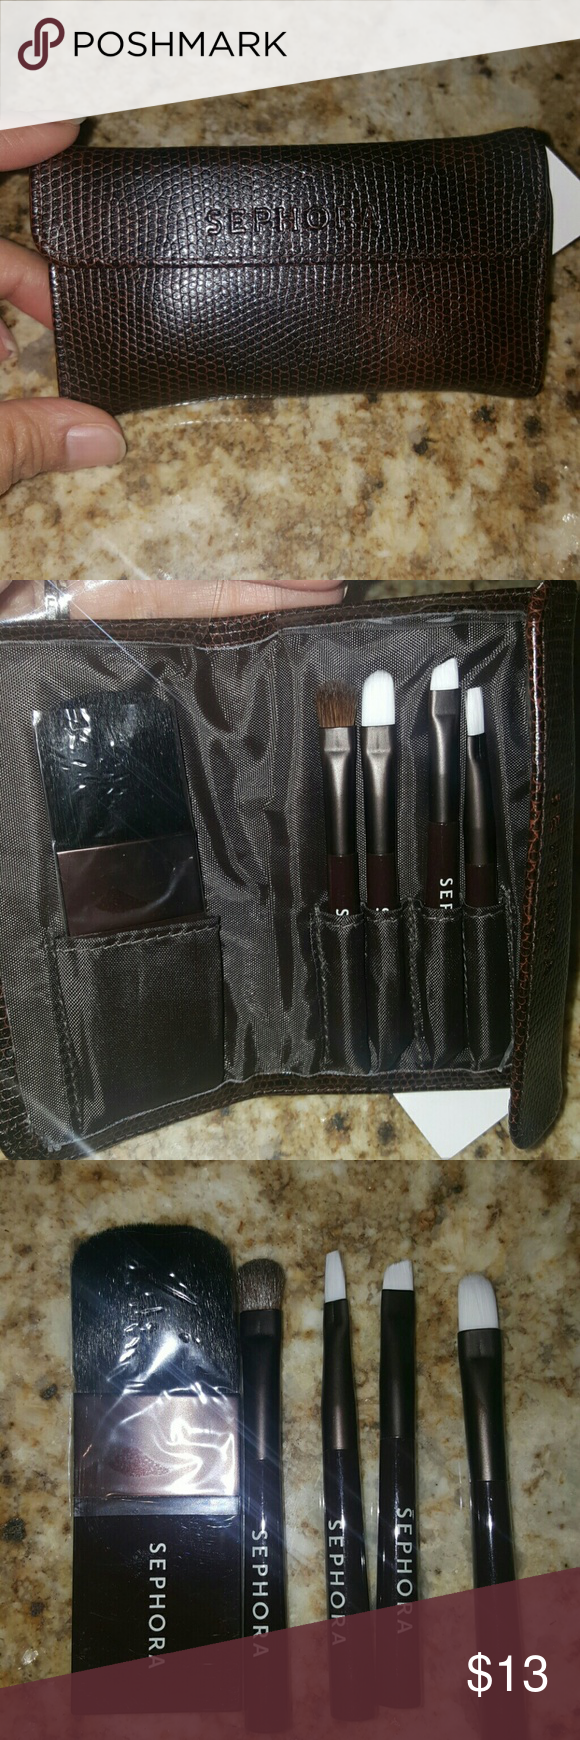 Sephora brand travel brush set NWT Sephora brands